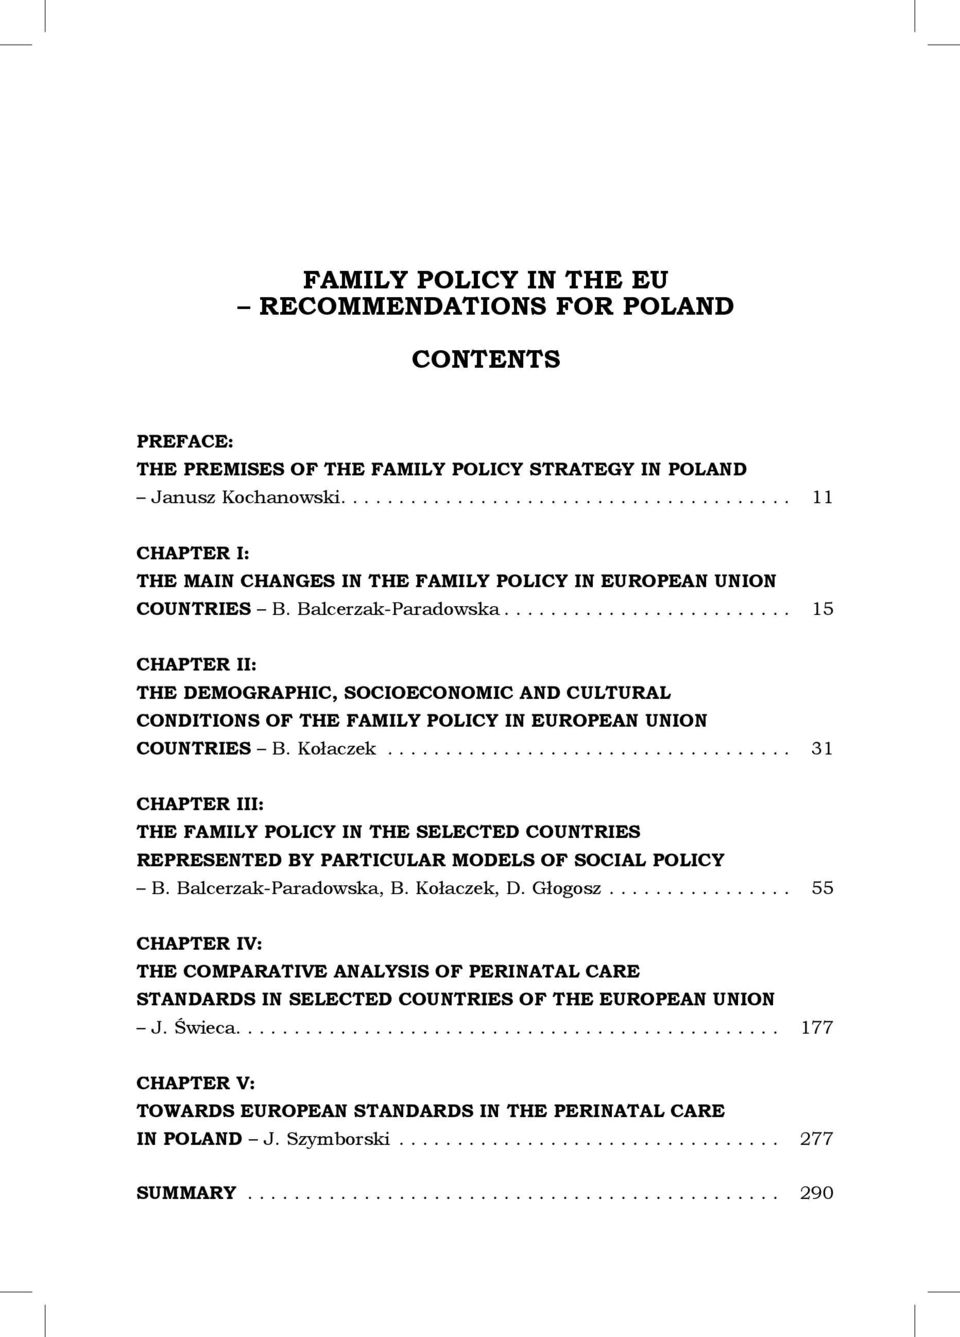 ........................ 15 CHAPTER II: THE DEMOGRAPHIC, SOCIOECONOMIC AND CULTURAL CONDITIONS OF THE FAMILY POLICY IN EUROPEAN UNION COUNTRIES B. Kołaczek.